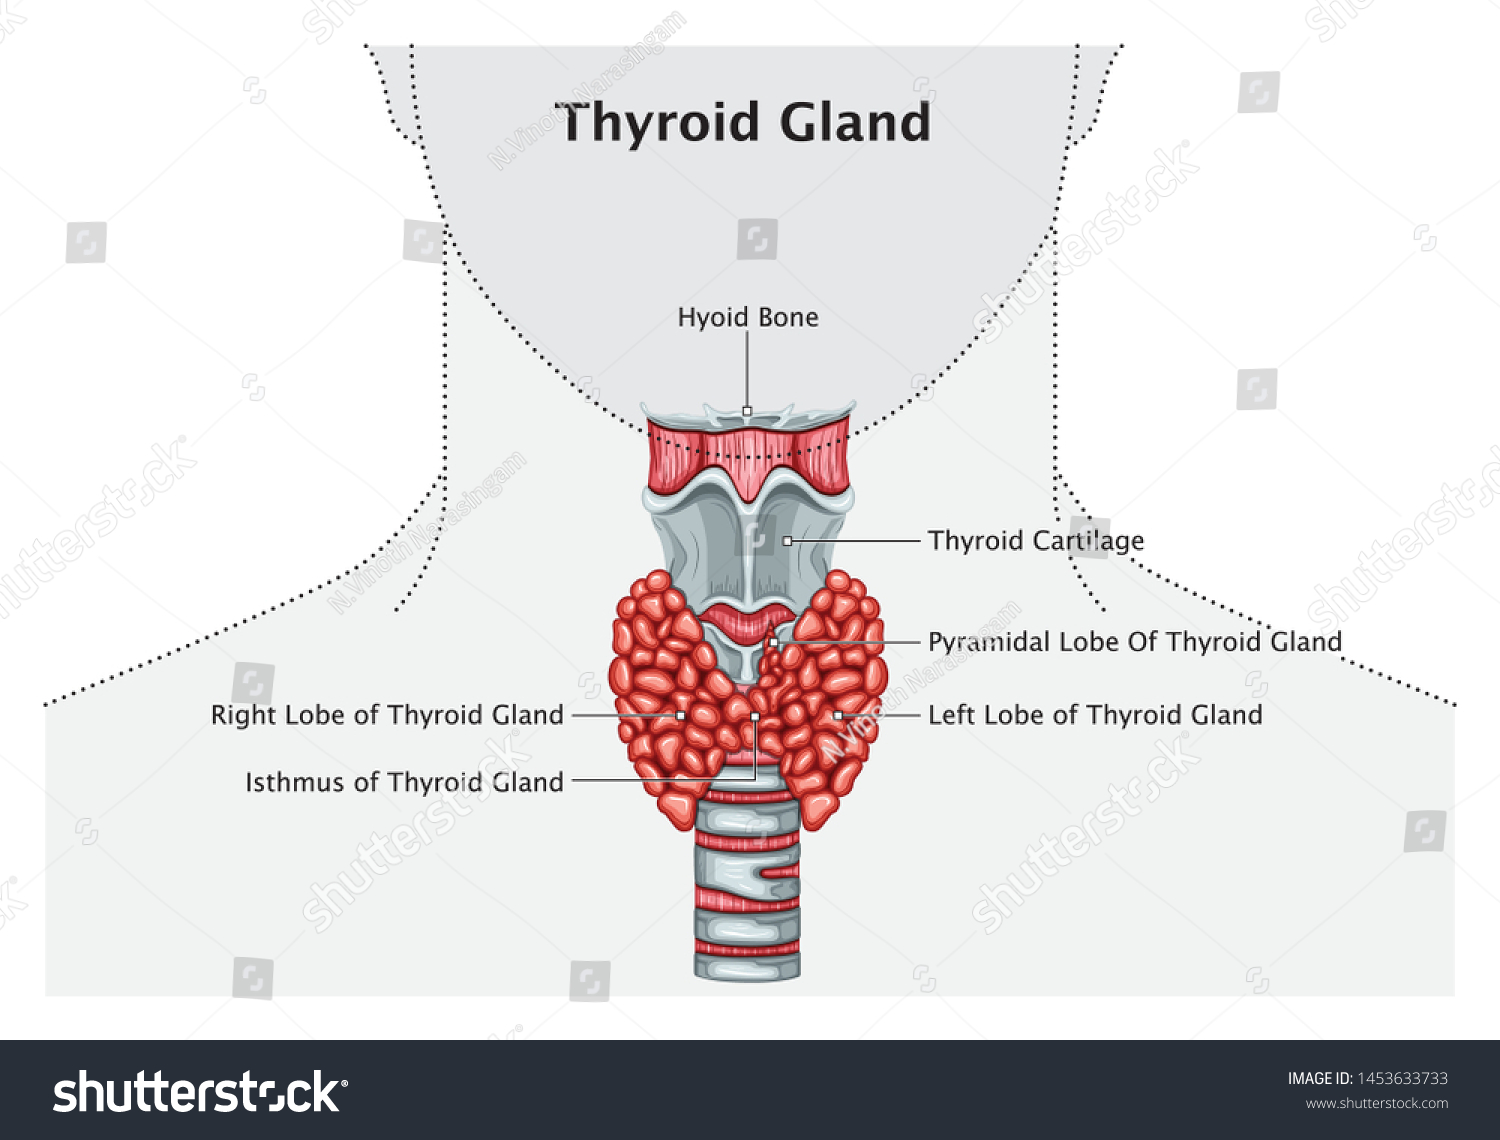 Human Thyroid Gland Anatomy Medical Education Stock Vector